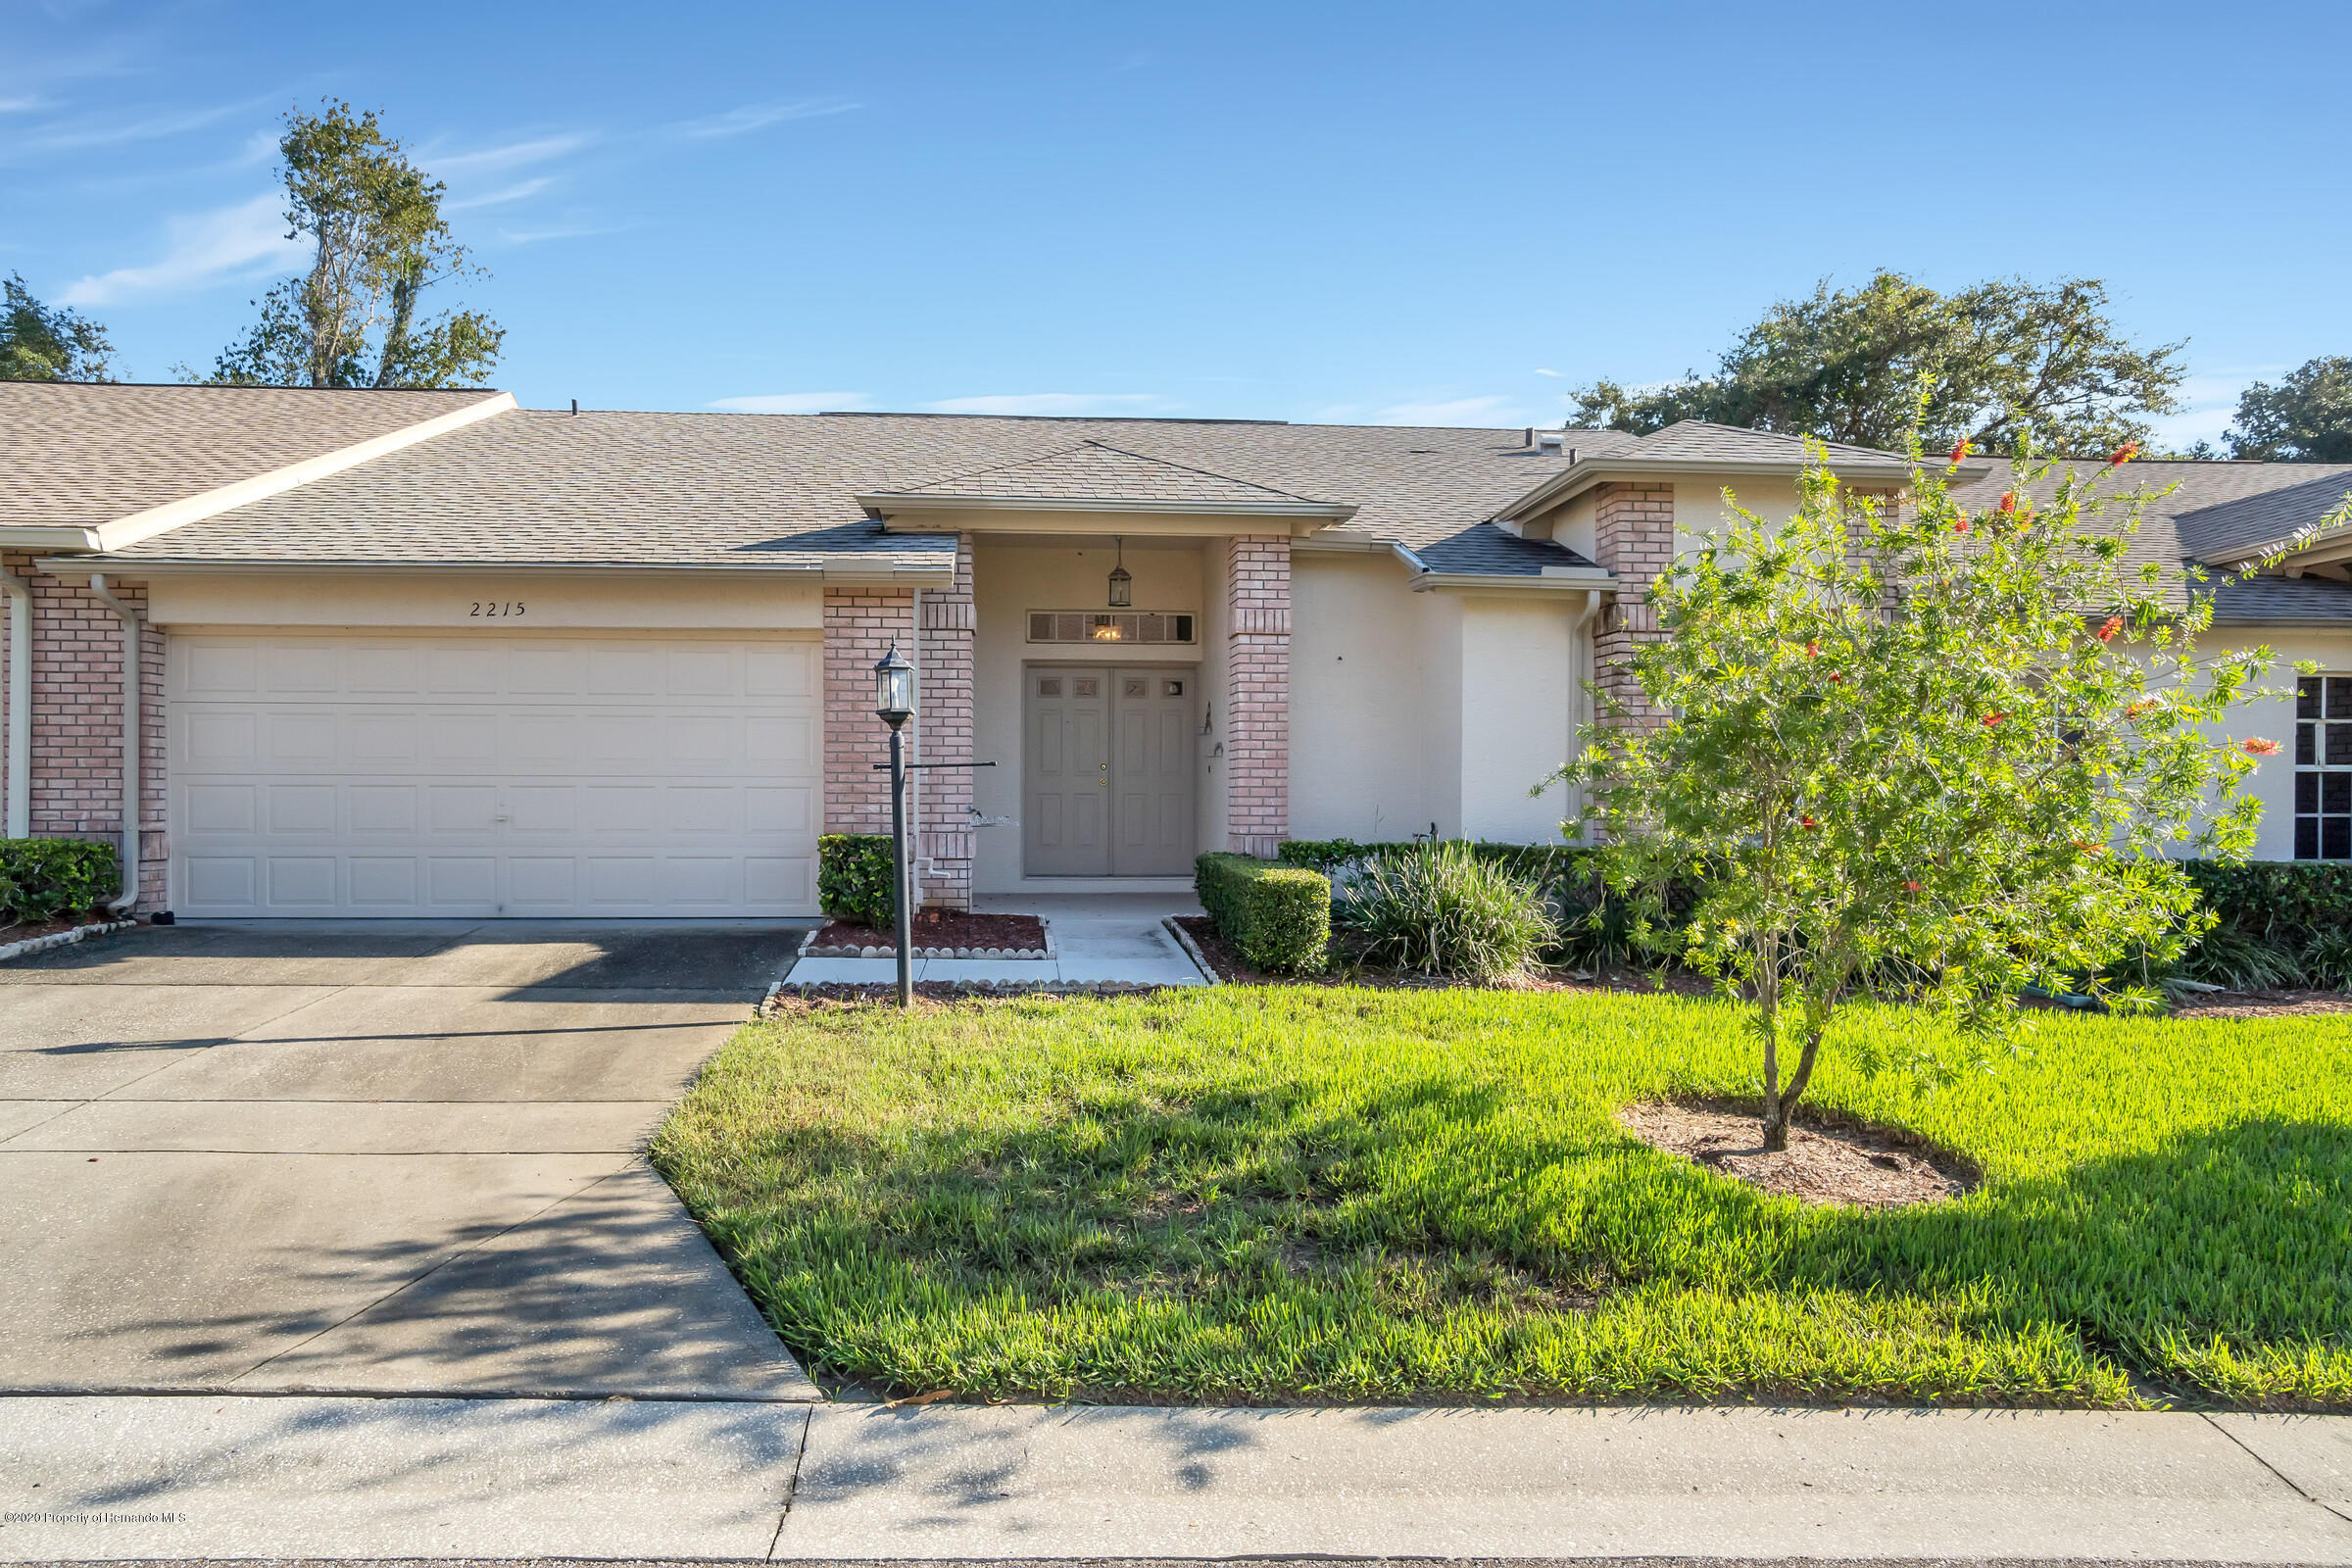 Details for 2215 Springmeadow Drive, Spring Hill, FL 34606